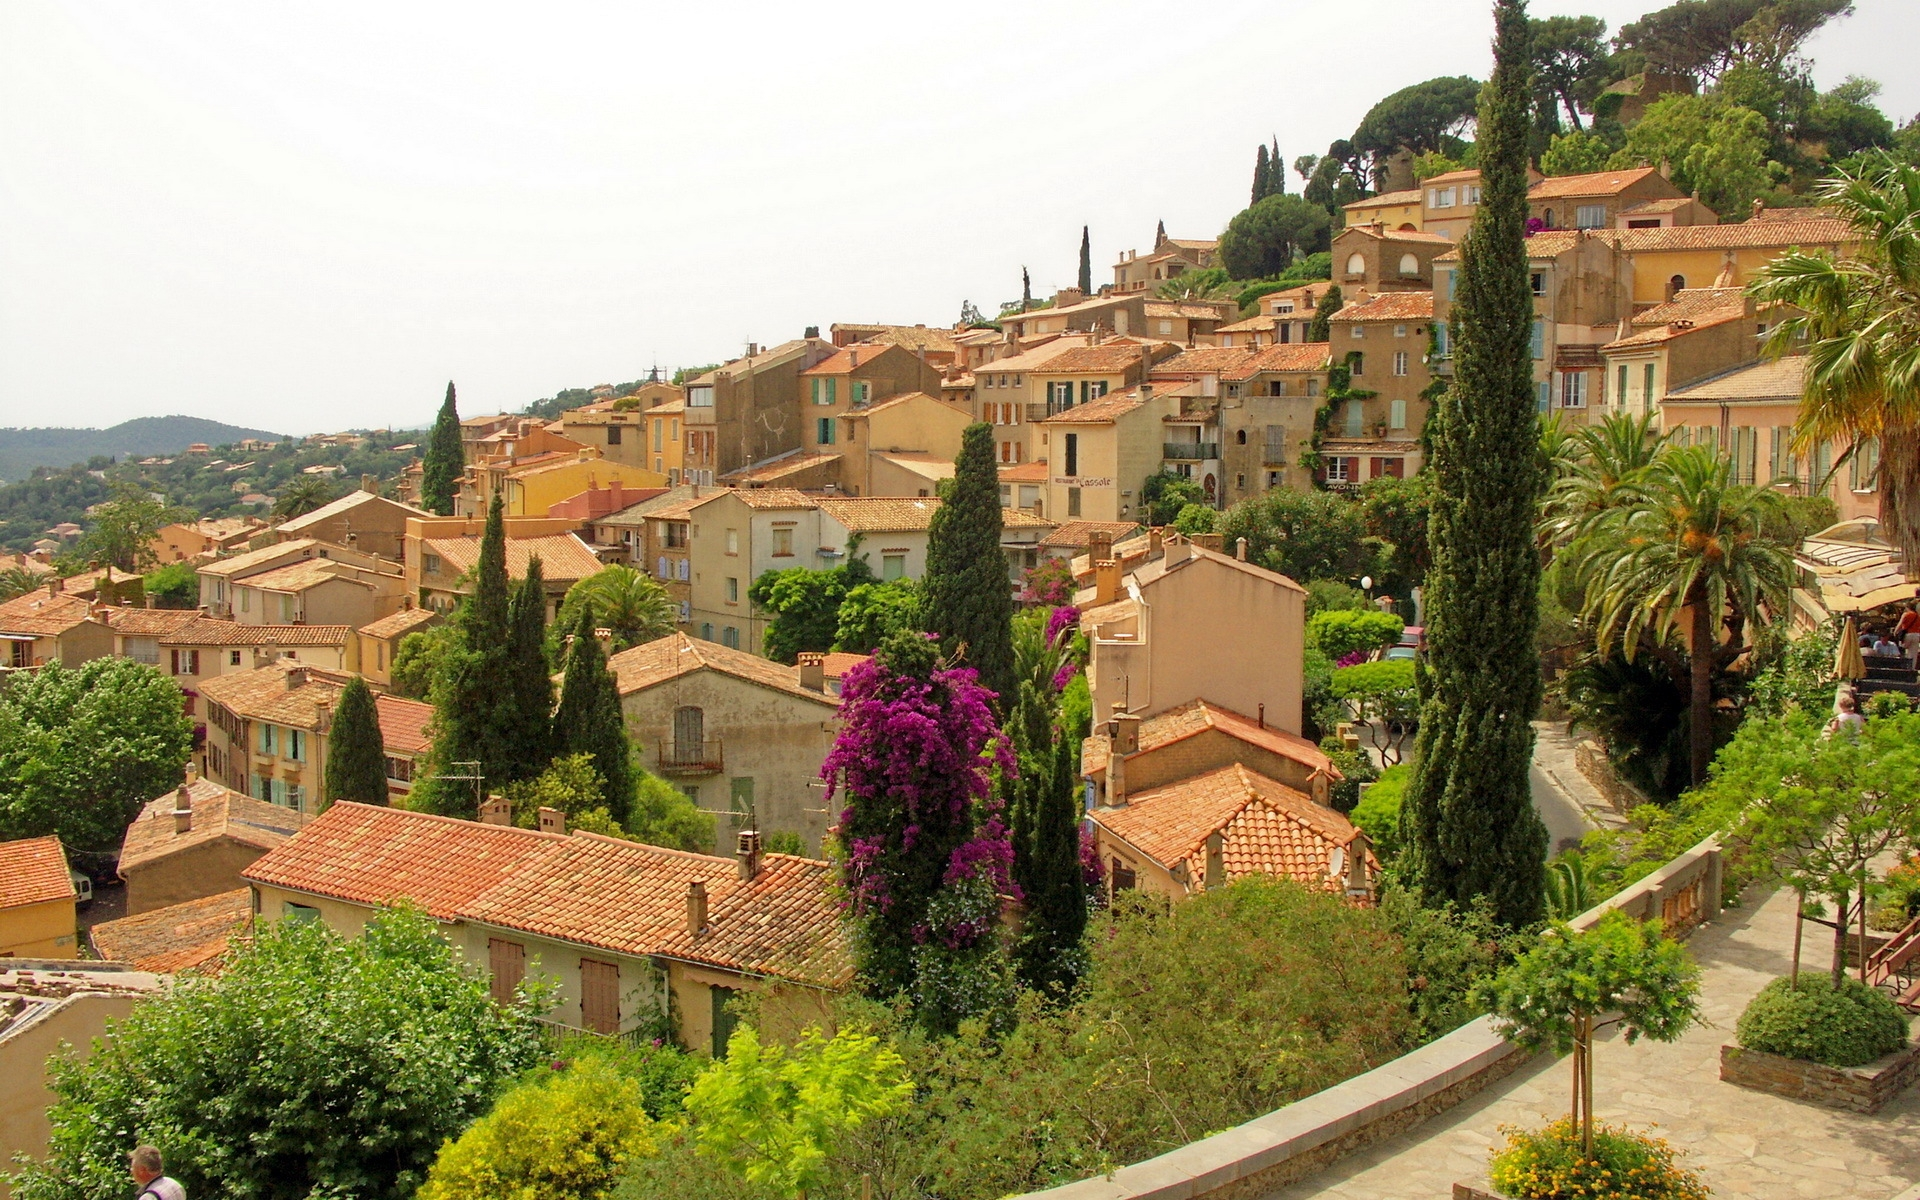 Provence Cote d Azur for 1920 x 1200 widescreen resolution